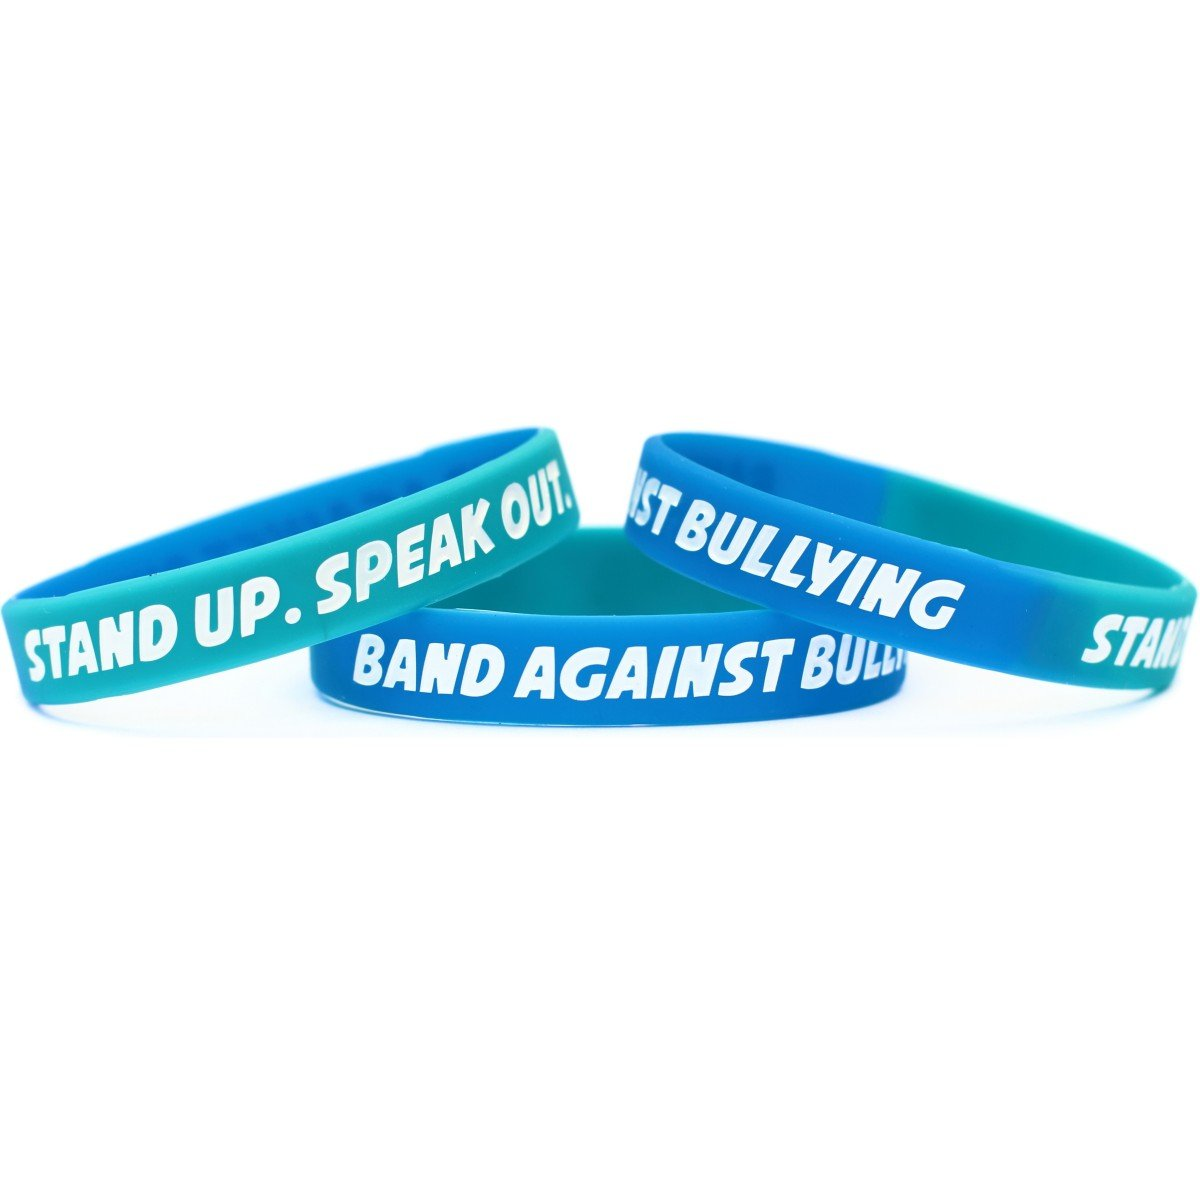 100 Anti Bullying Wristbands – DebossedカラーFilledシリコンバンド 100 子ども  B01MEG33WD